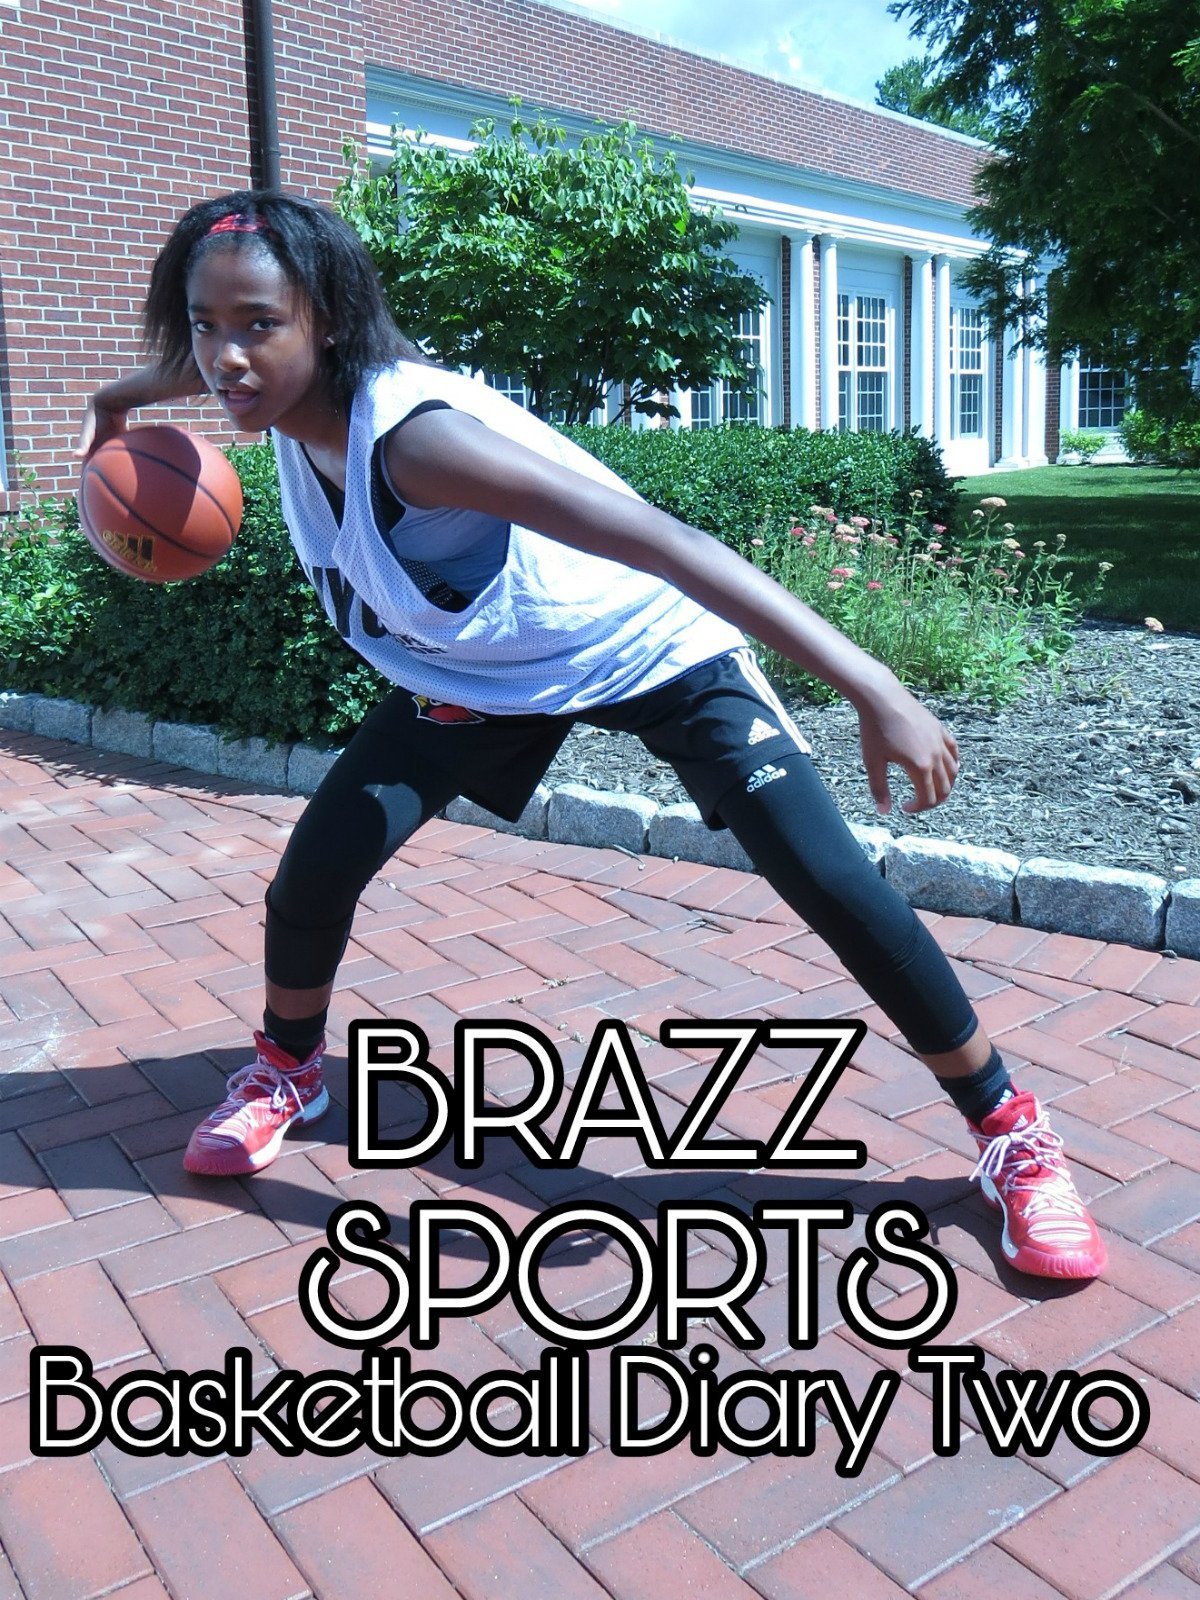 Brazz Sports Basketball Diary Two on Amazon Prime Video UK